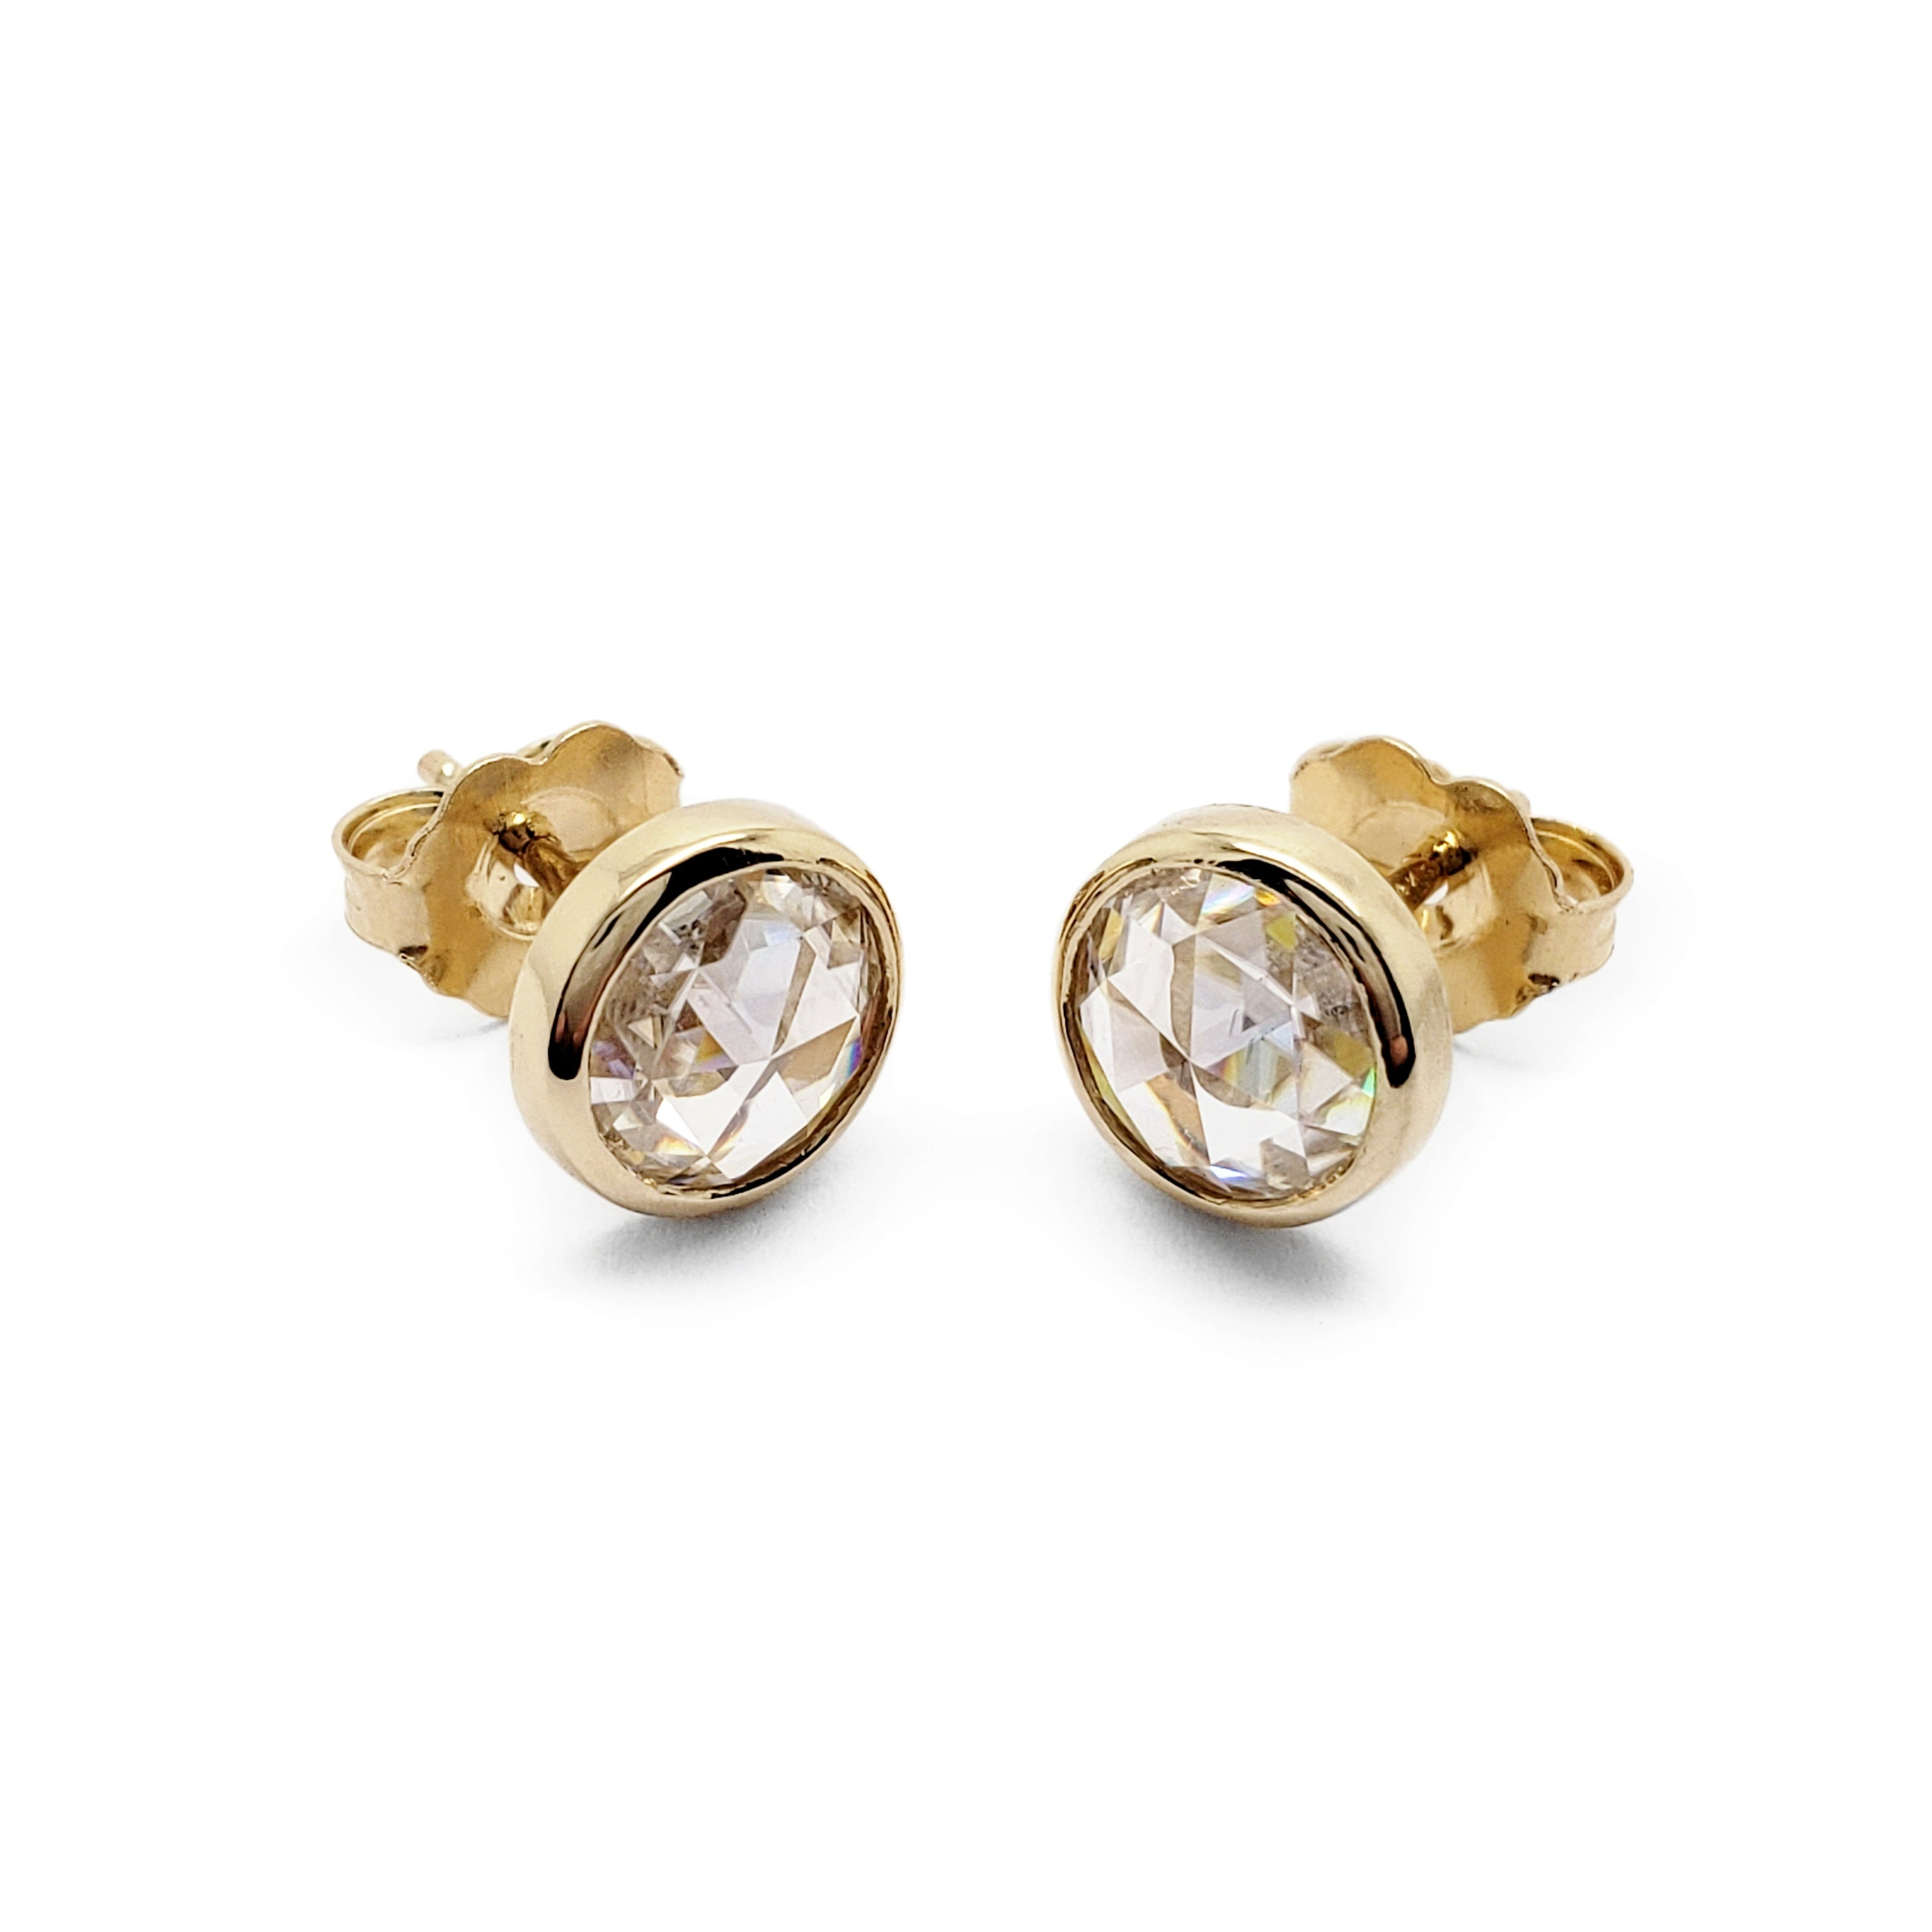 Moissanite Earrings | Era Design Vancouver Canada